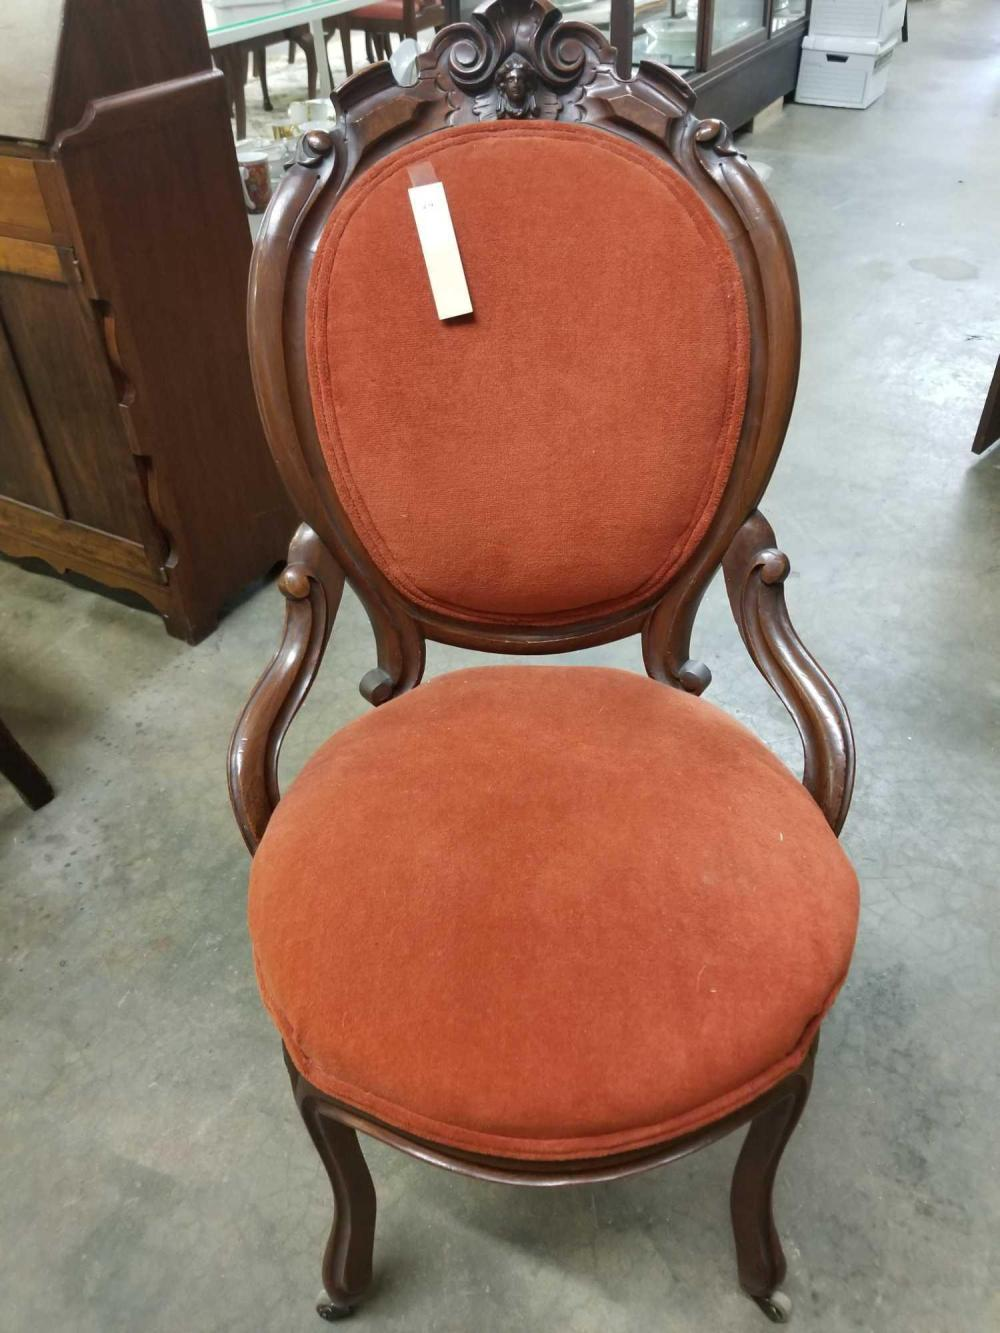 FRENCH REGENCY STYLE VICTORIAN LADIES PARLOR CHAIR